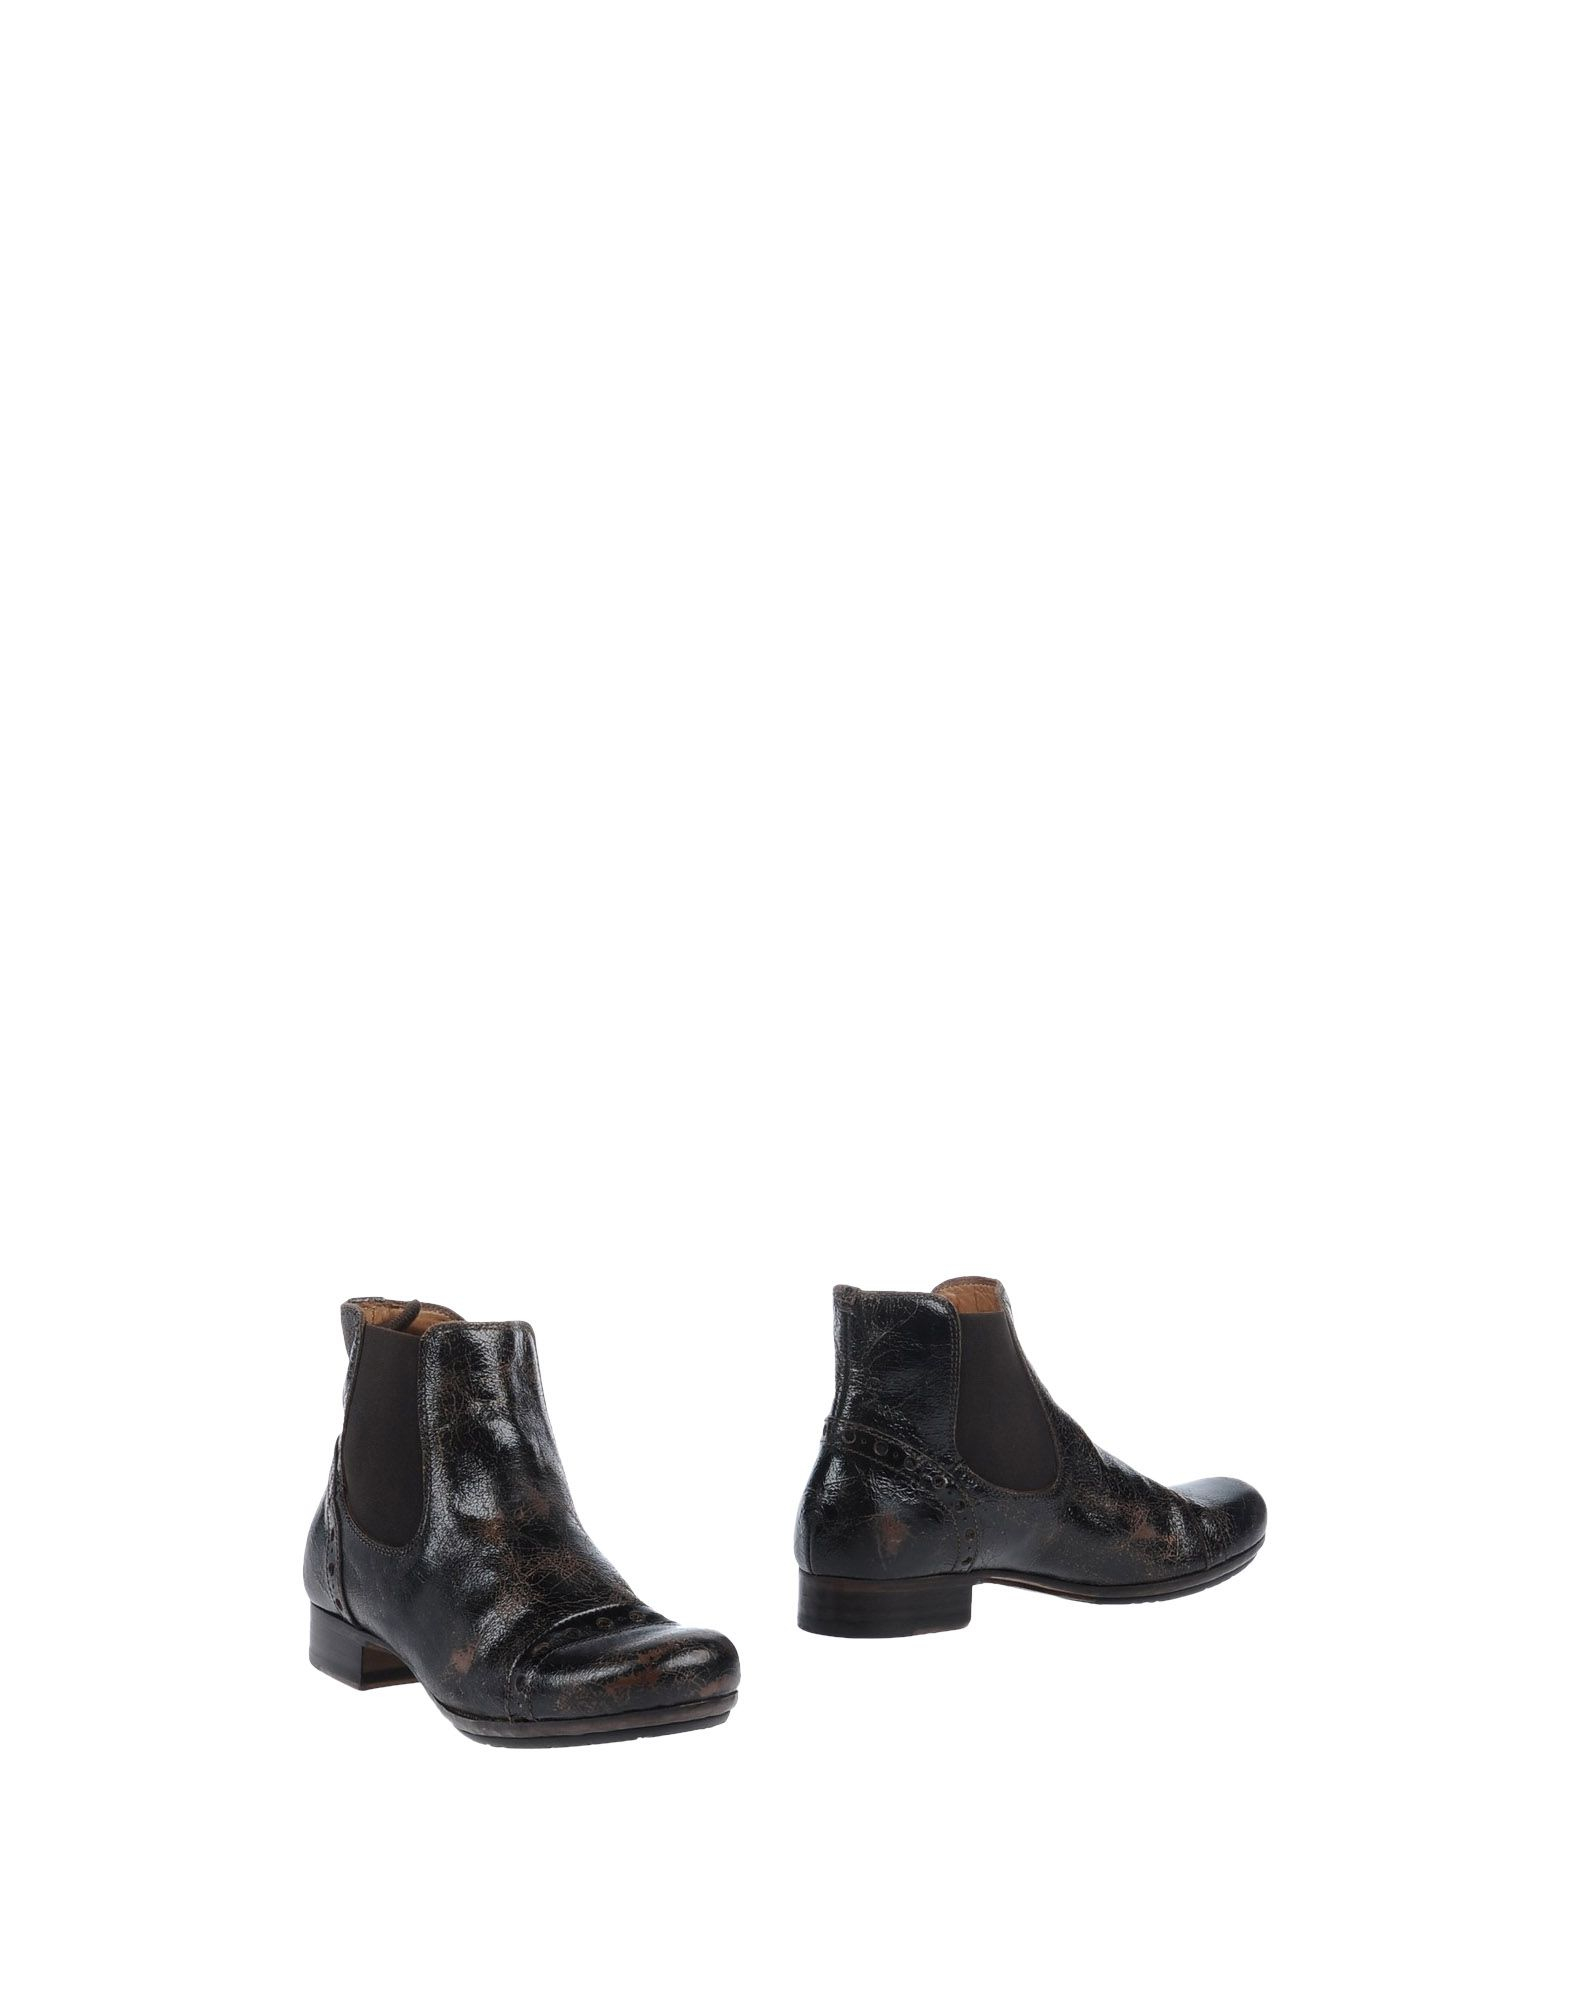 Pantanetti Ankle Boots in Black